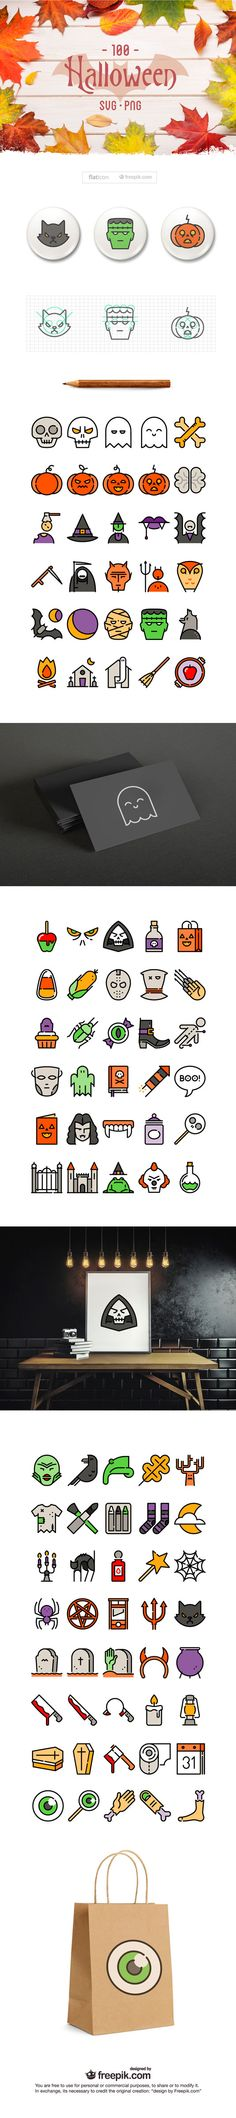 Free Halloween icon pack to download today | Design | Creative Bloq